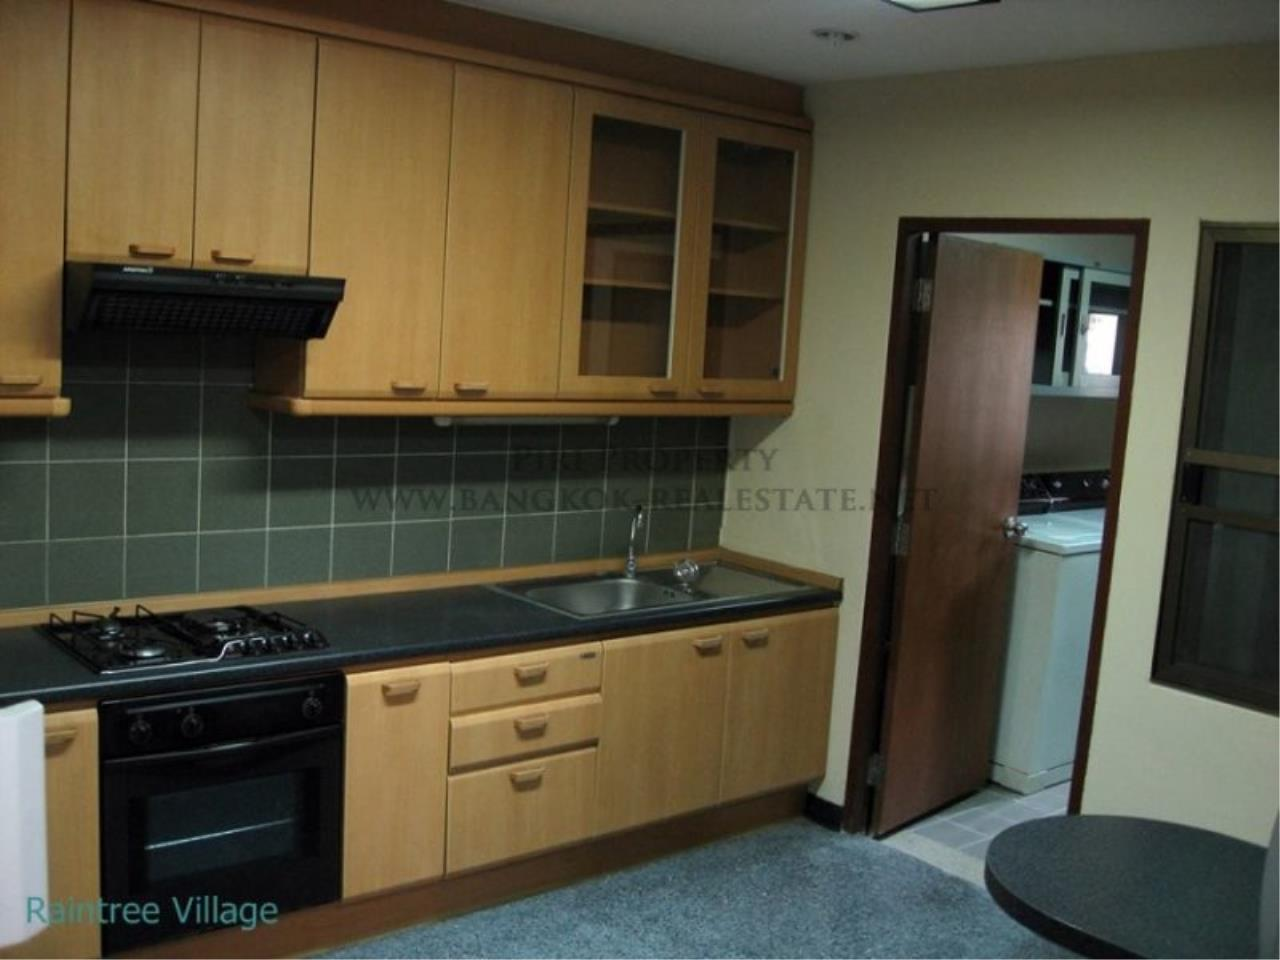 Piri Property Agency's Spacious Family Apartment in Phrom Phong for Rent - 3 Bed 14